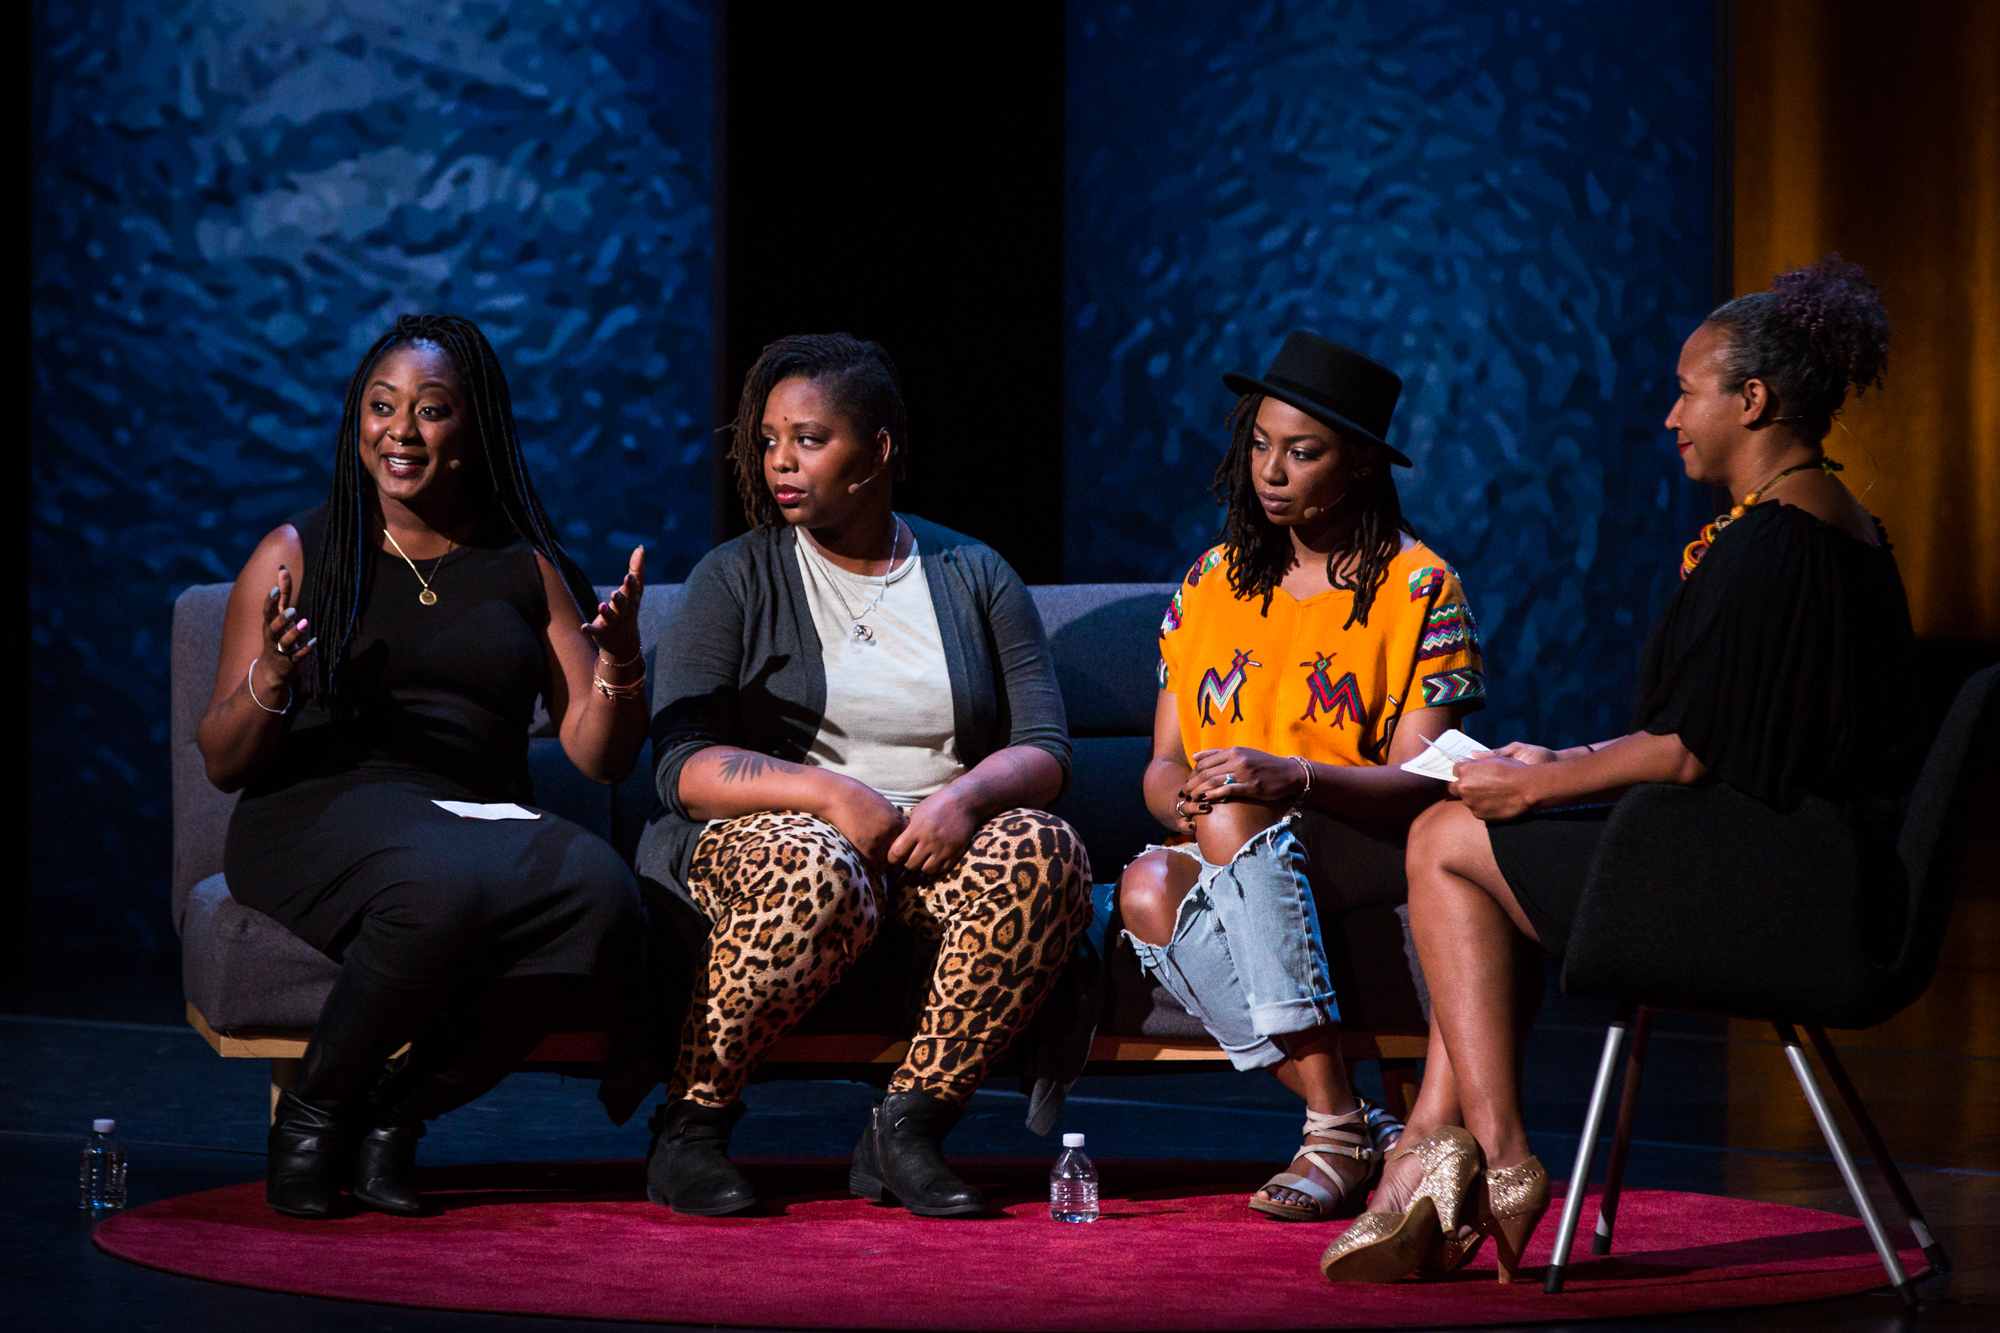 Founders of the Black Lives Matter movement (Alicia Garza, Patrisse Cullors, and Opal Tometi) interviewed by Mia Birdsong at TEDWomen 2016 - It's About Time, October 26-28, 2016, Yerba Buena Centre for the Arts, San Francisco, California. Photo: Marla Aufmuth / TED